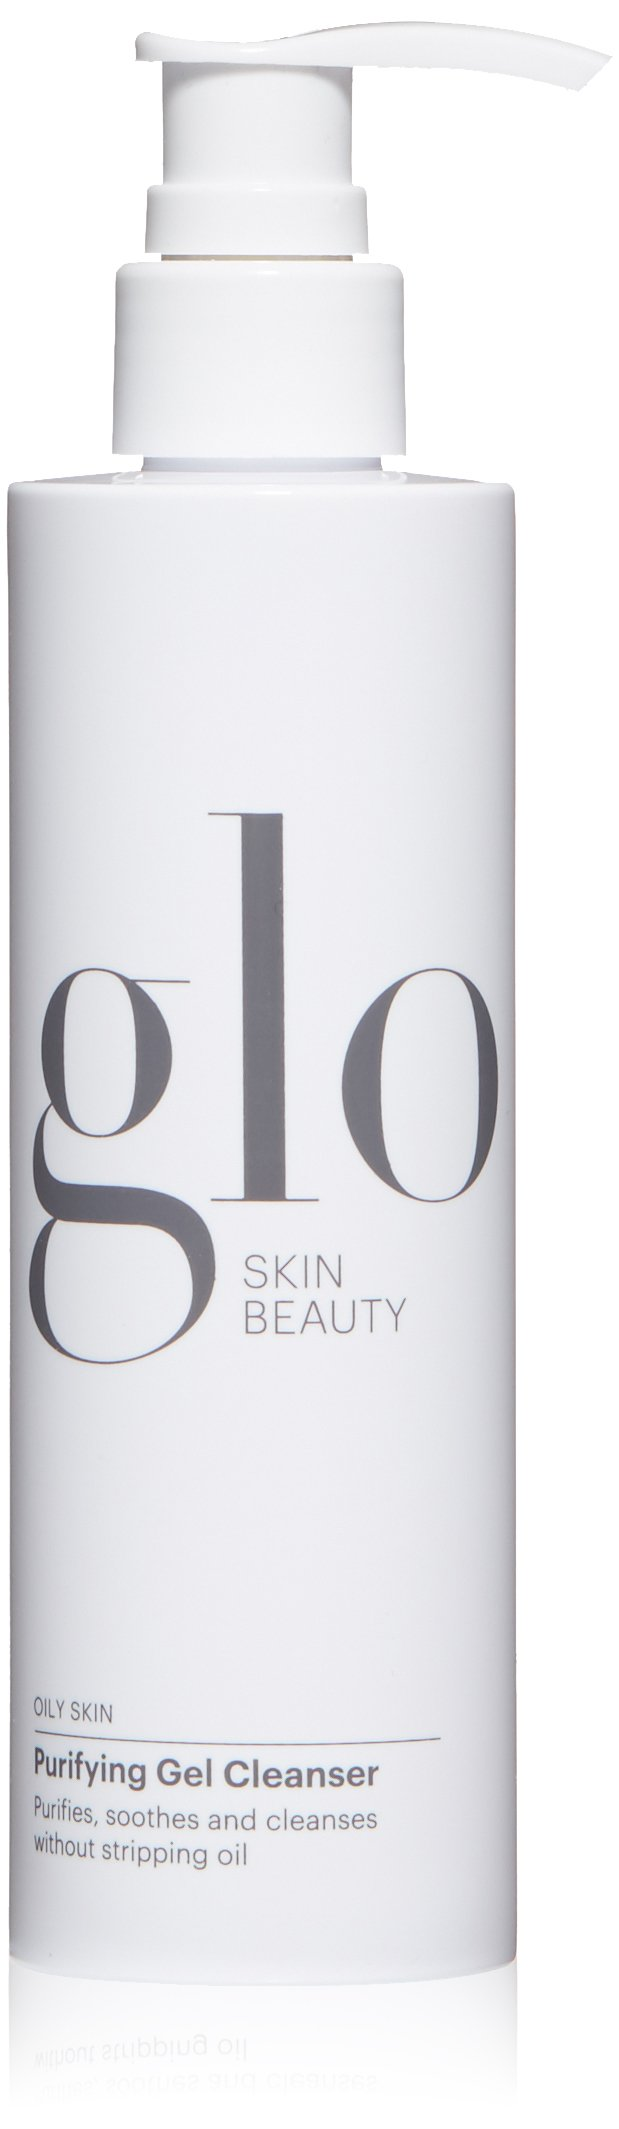 Glo Skin Beauty Purifying Gel Cleanser   Face Wash for Oily Skin   Deeply Cleanse Pores for Soft and Hydrated Skin